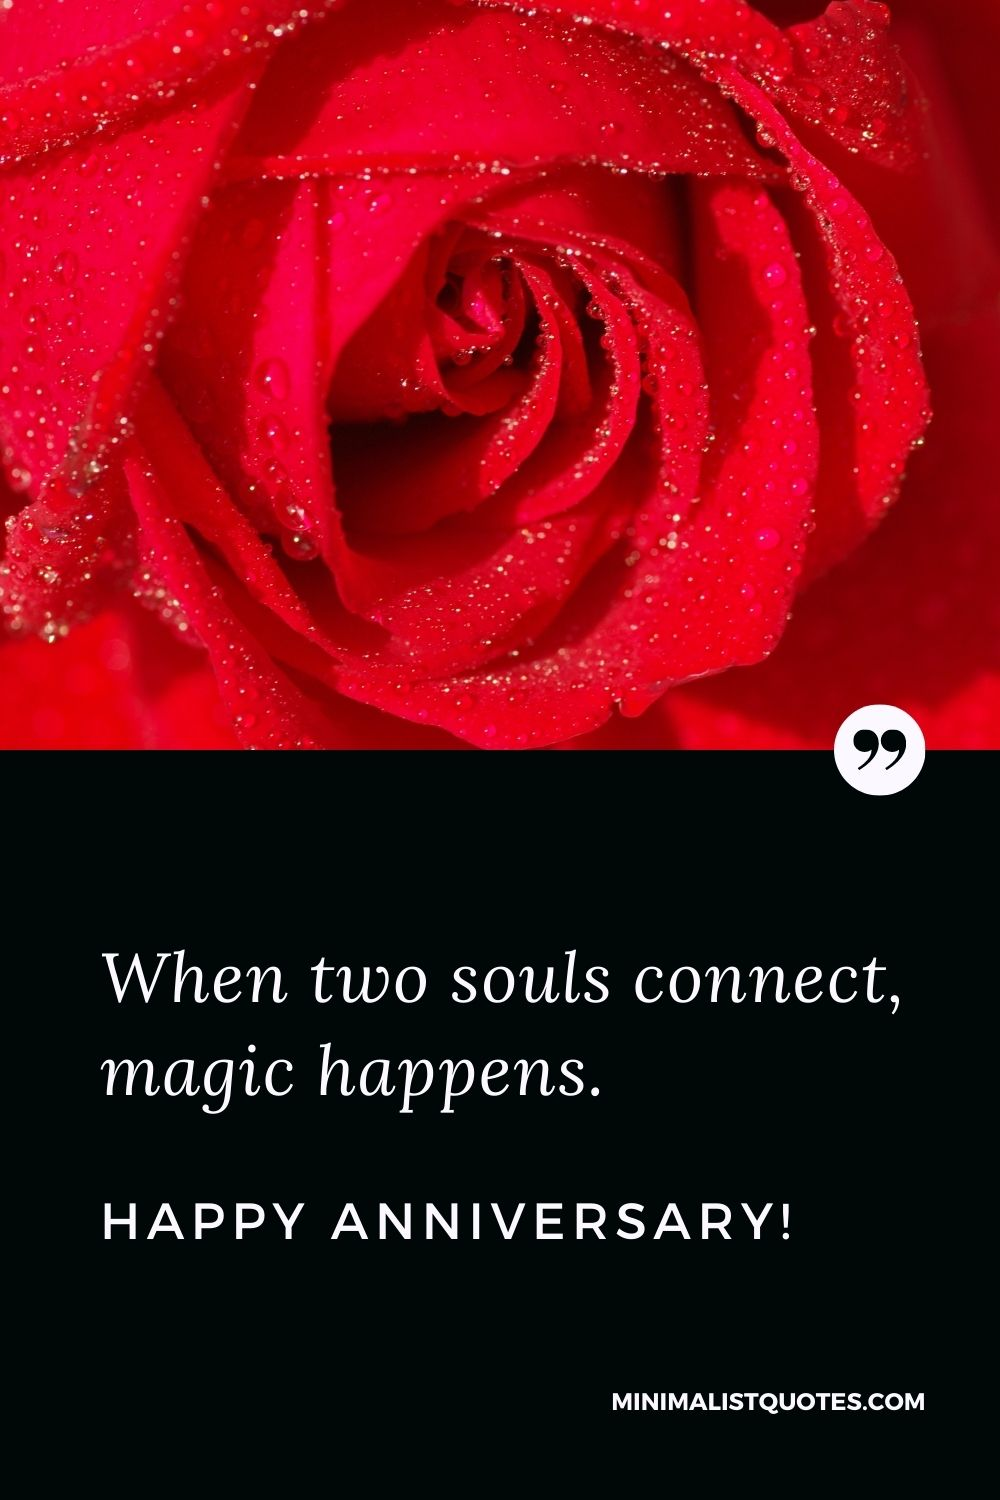 Anniversary Quote, Wish & Message With Image: When two souls connect, magic happens. Happy Anniversary!